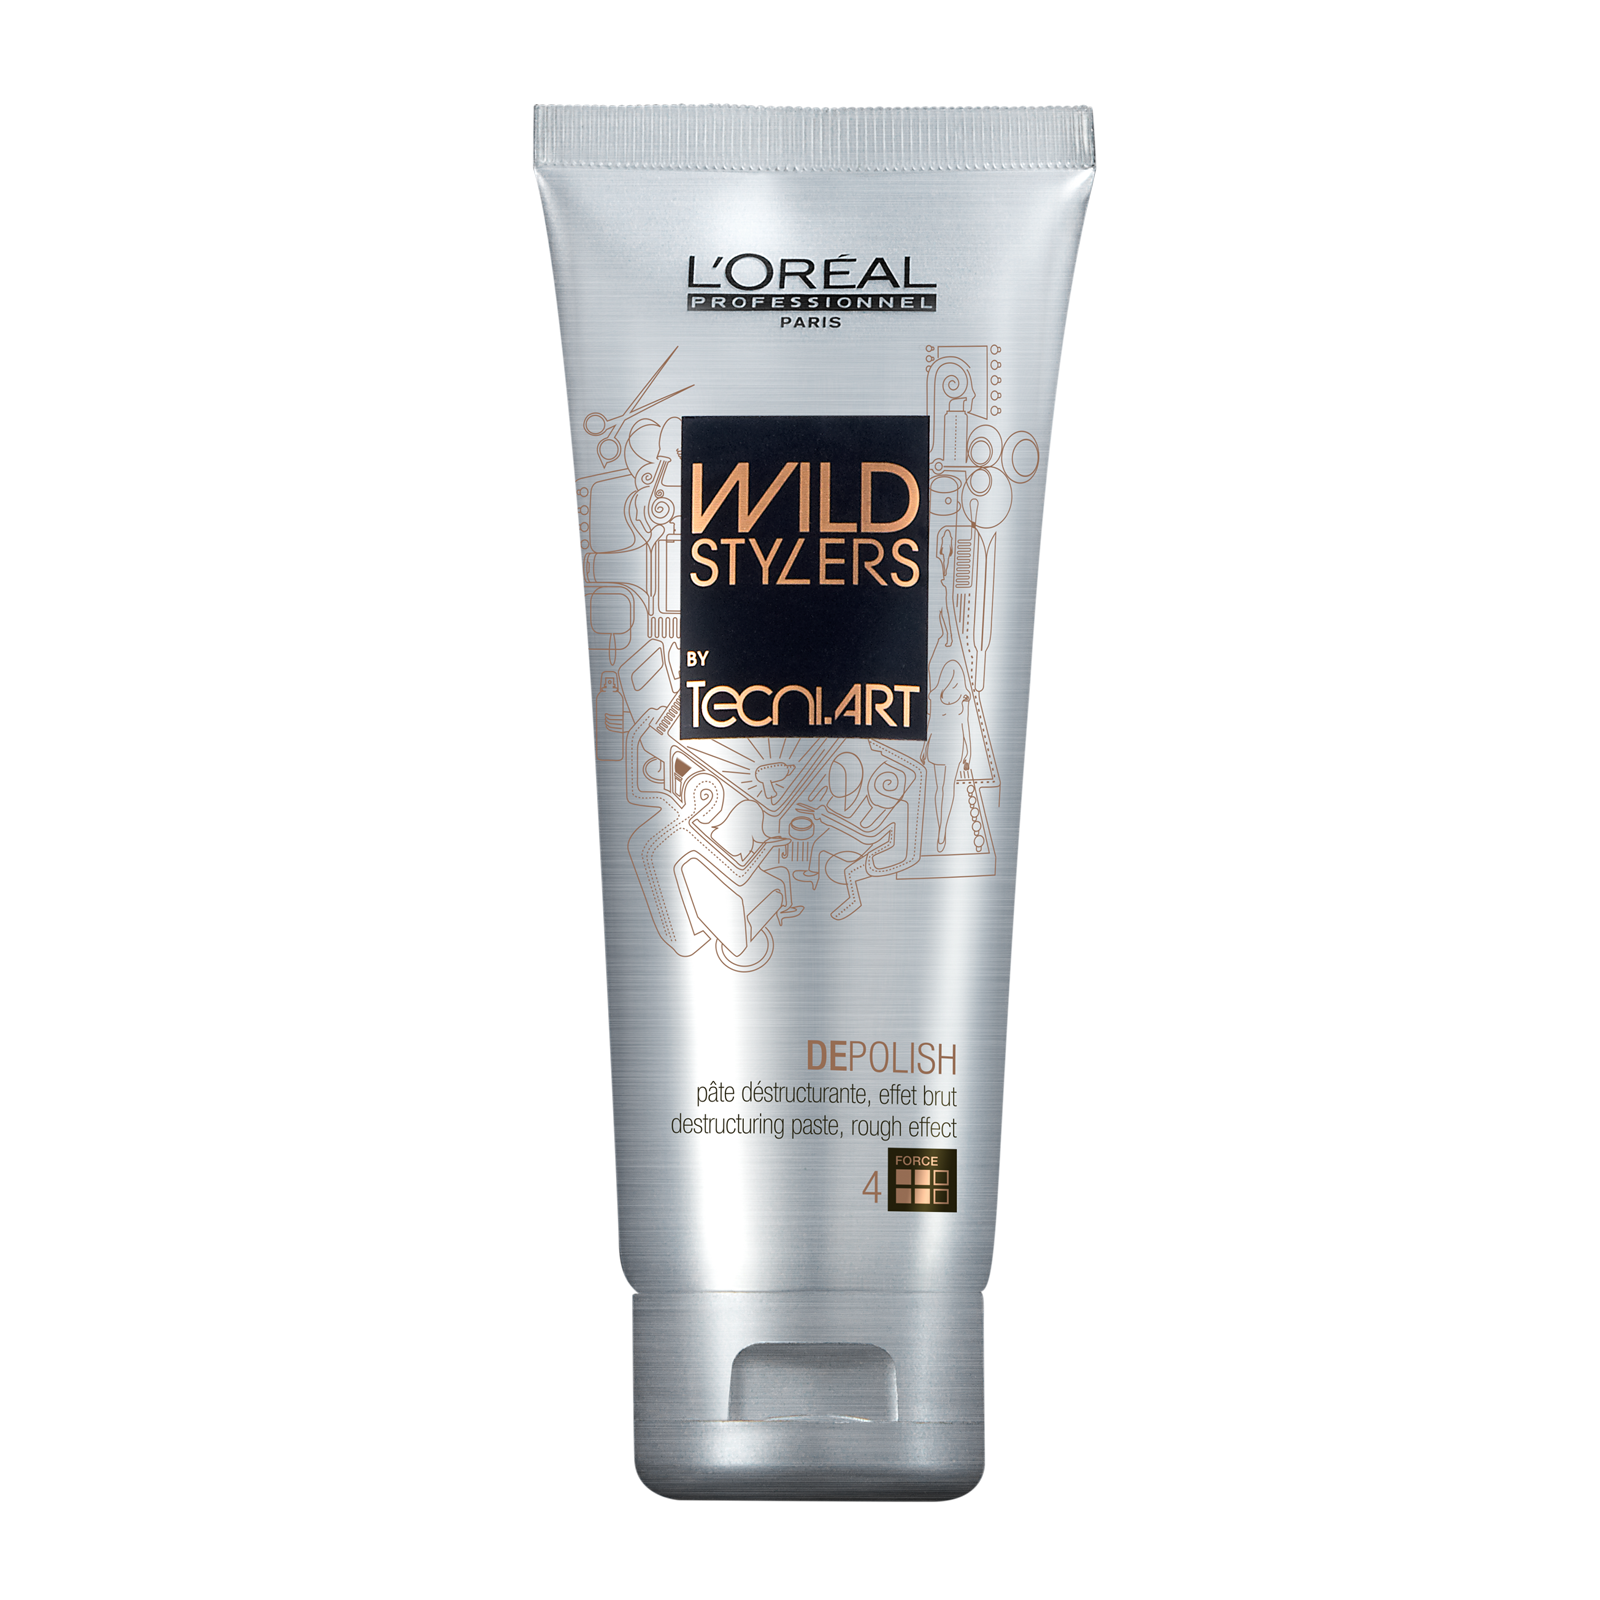 L__039_Or_eacute_al_Professionnel_Wild_Stylers_Depolish_100ml_1393856749.png